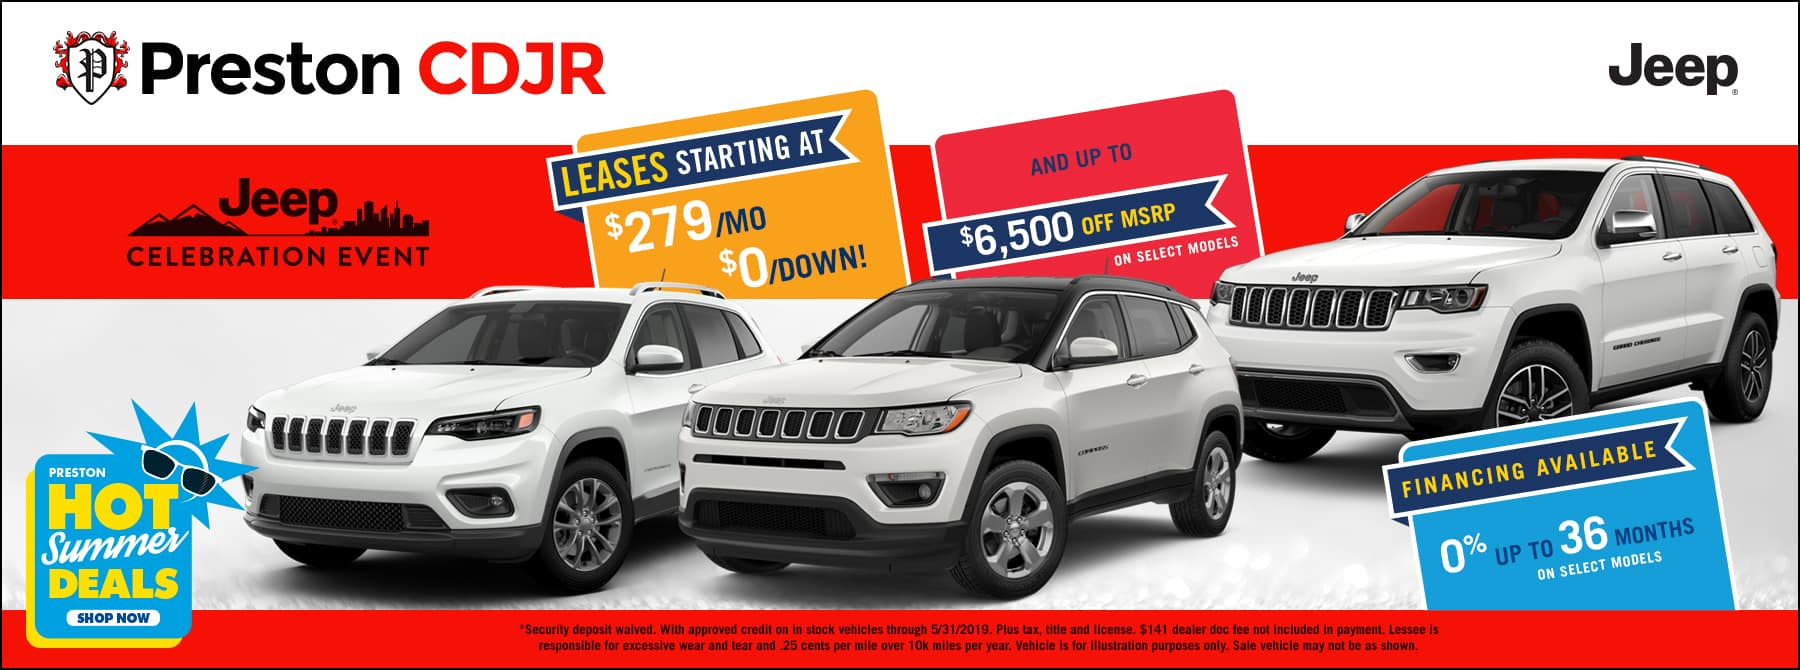 May special on CDJR inventory